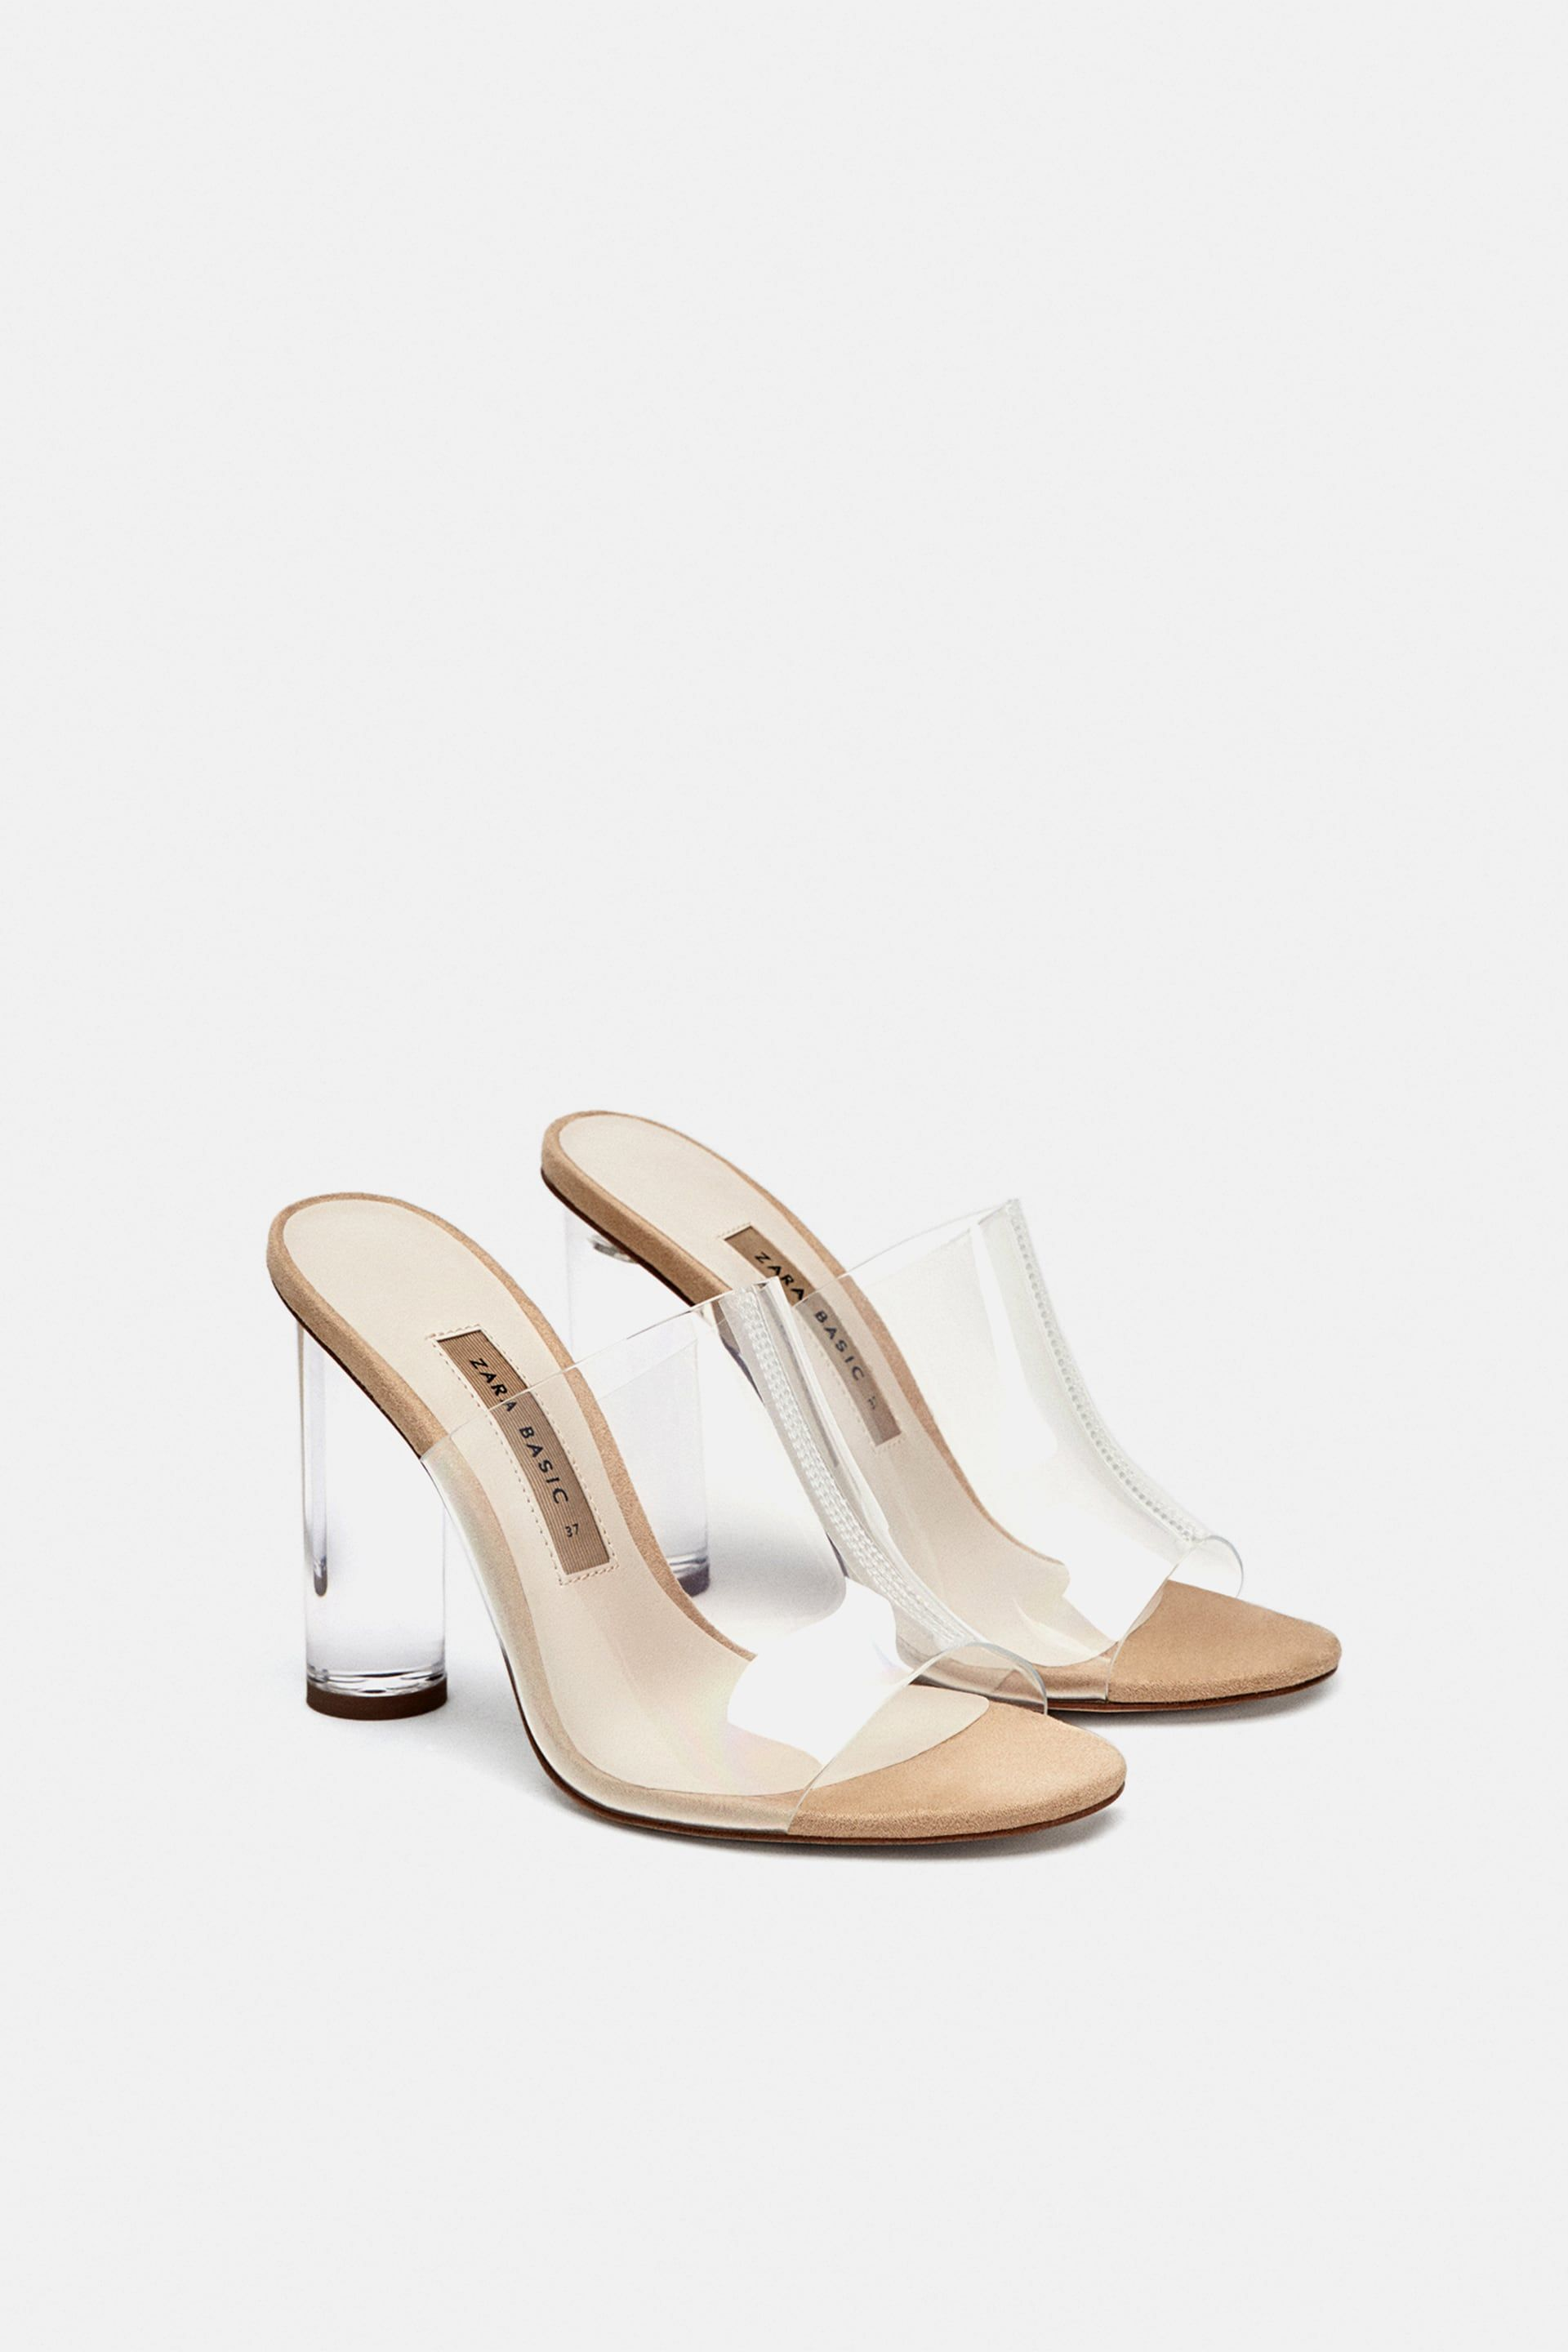 661186fce74 Image 1 of VINYL MULES WITH METHACRYLATE HEEL from Zara